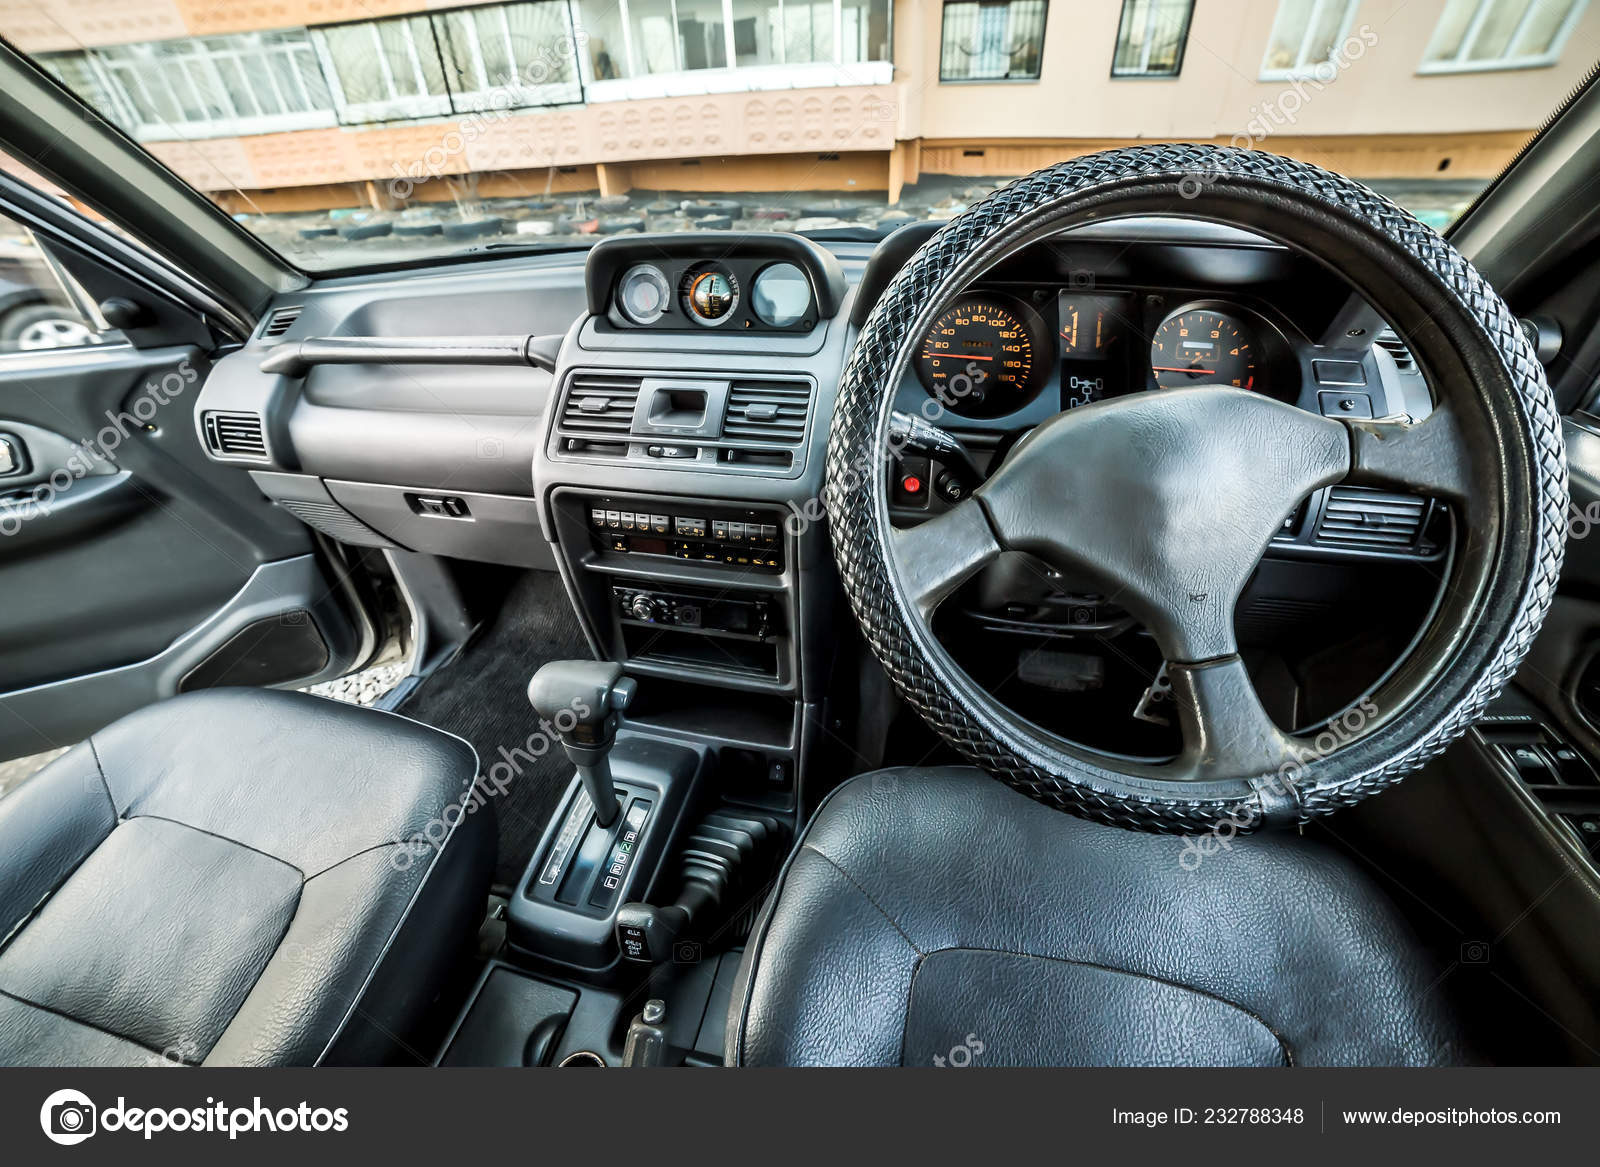 Bright Photo Dashboard Car Black Salon Stock Editorial Photo C Nicola Dj Mail Ru 232788348